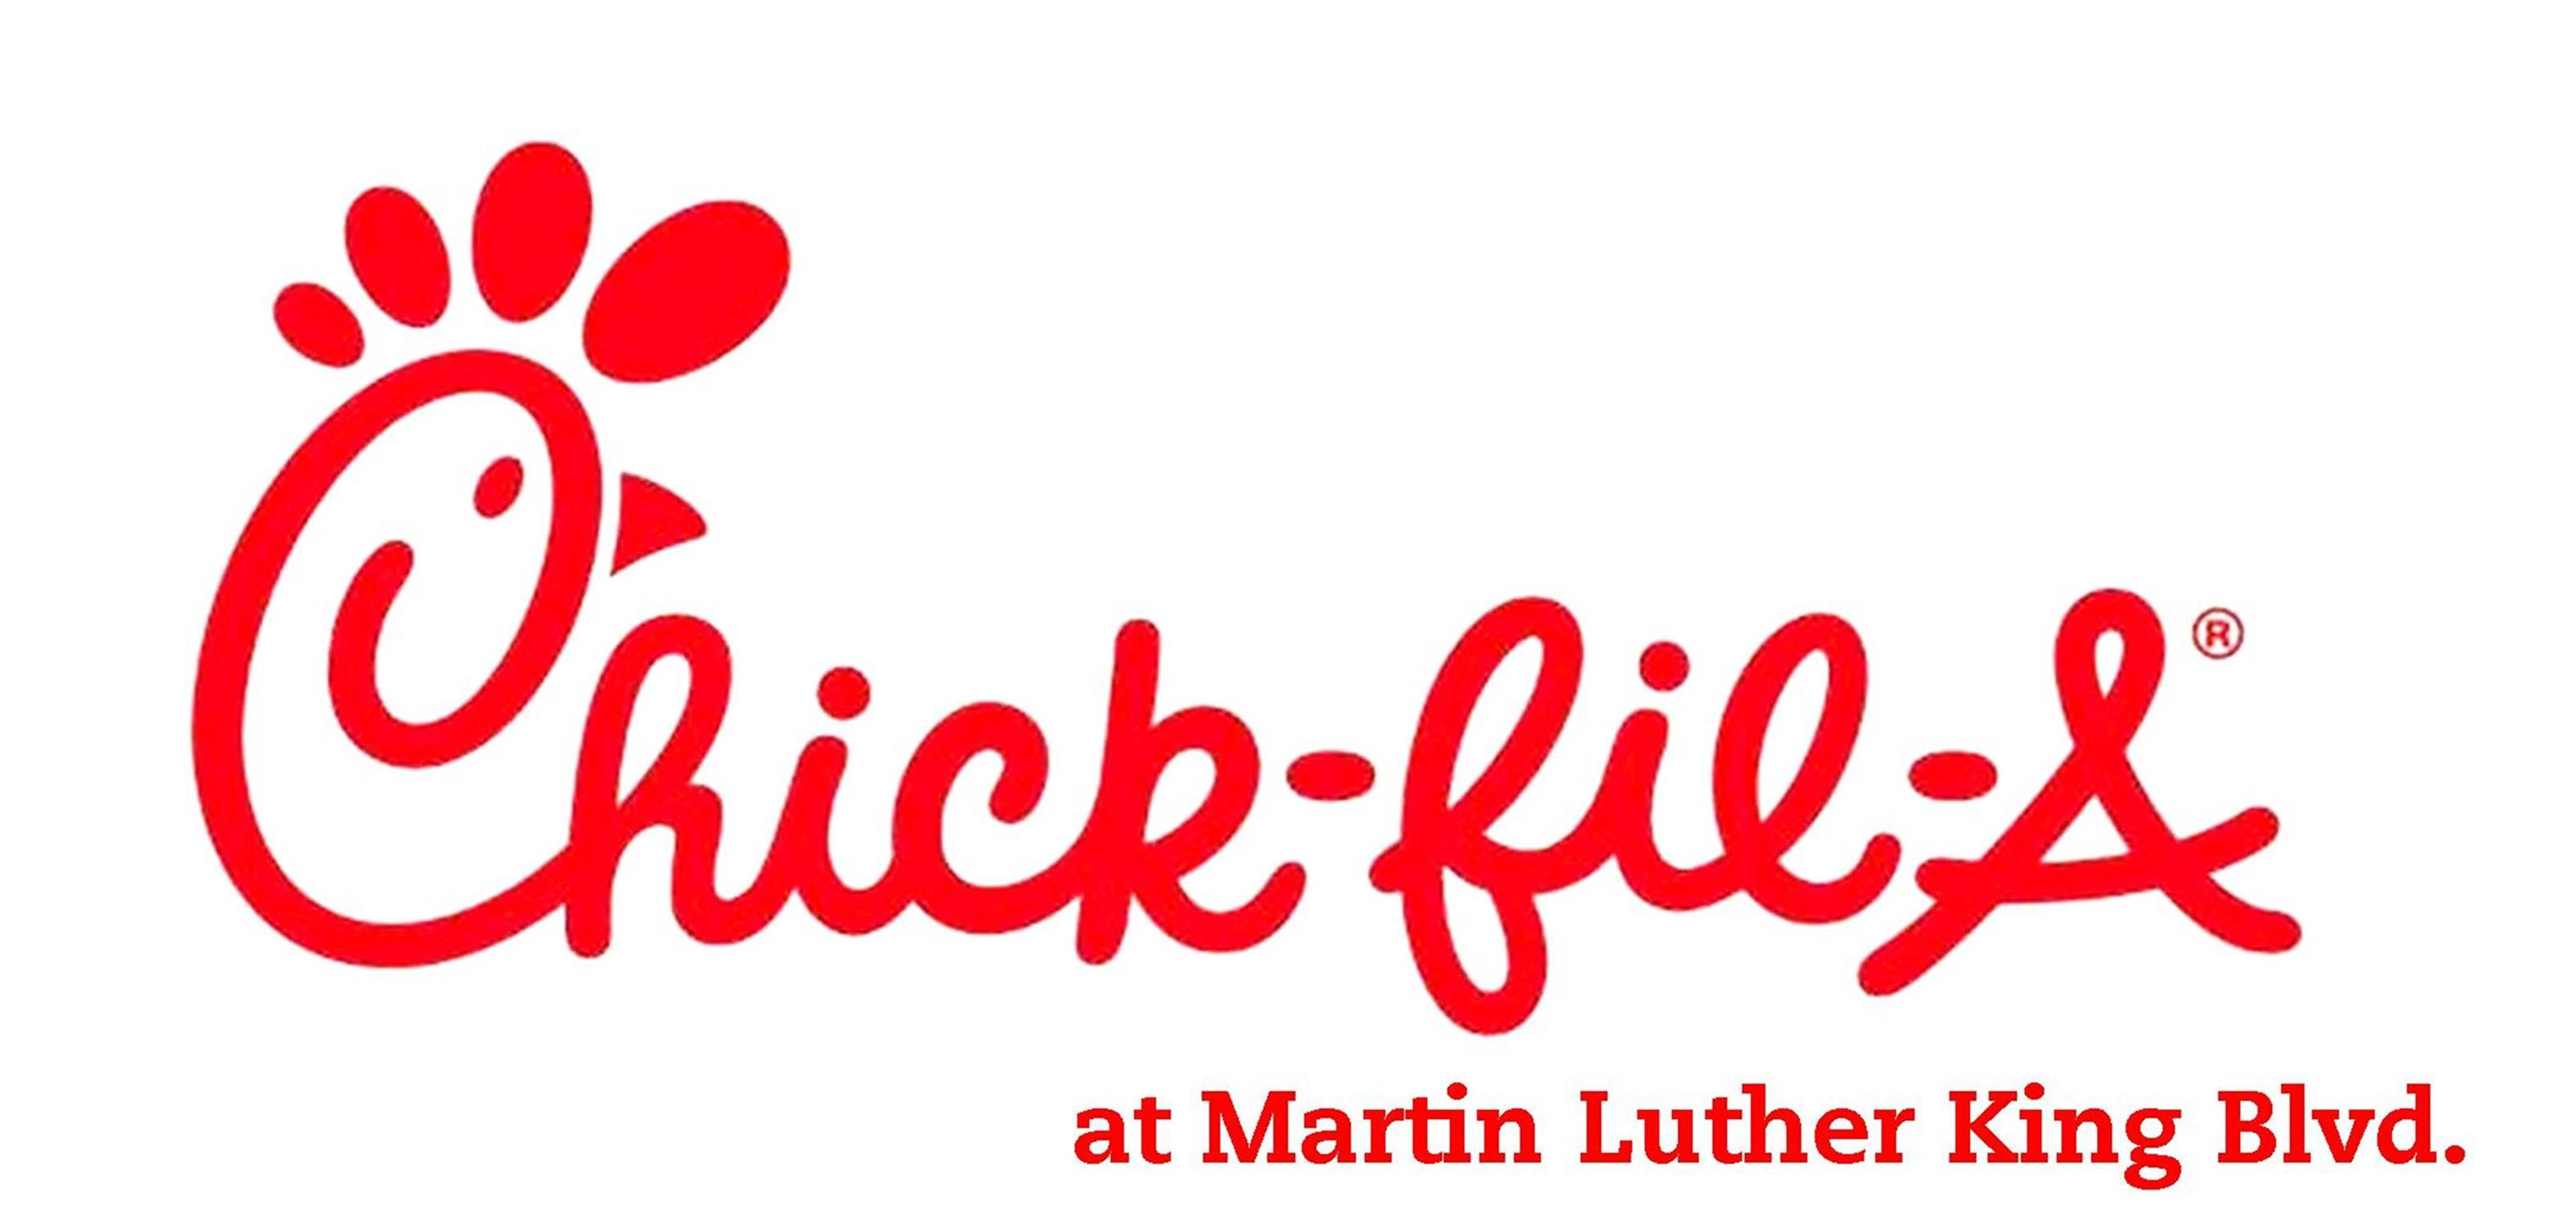 Chick-fil-A at Martin Luther King Blvd